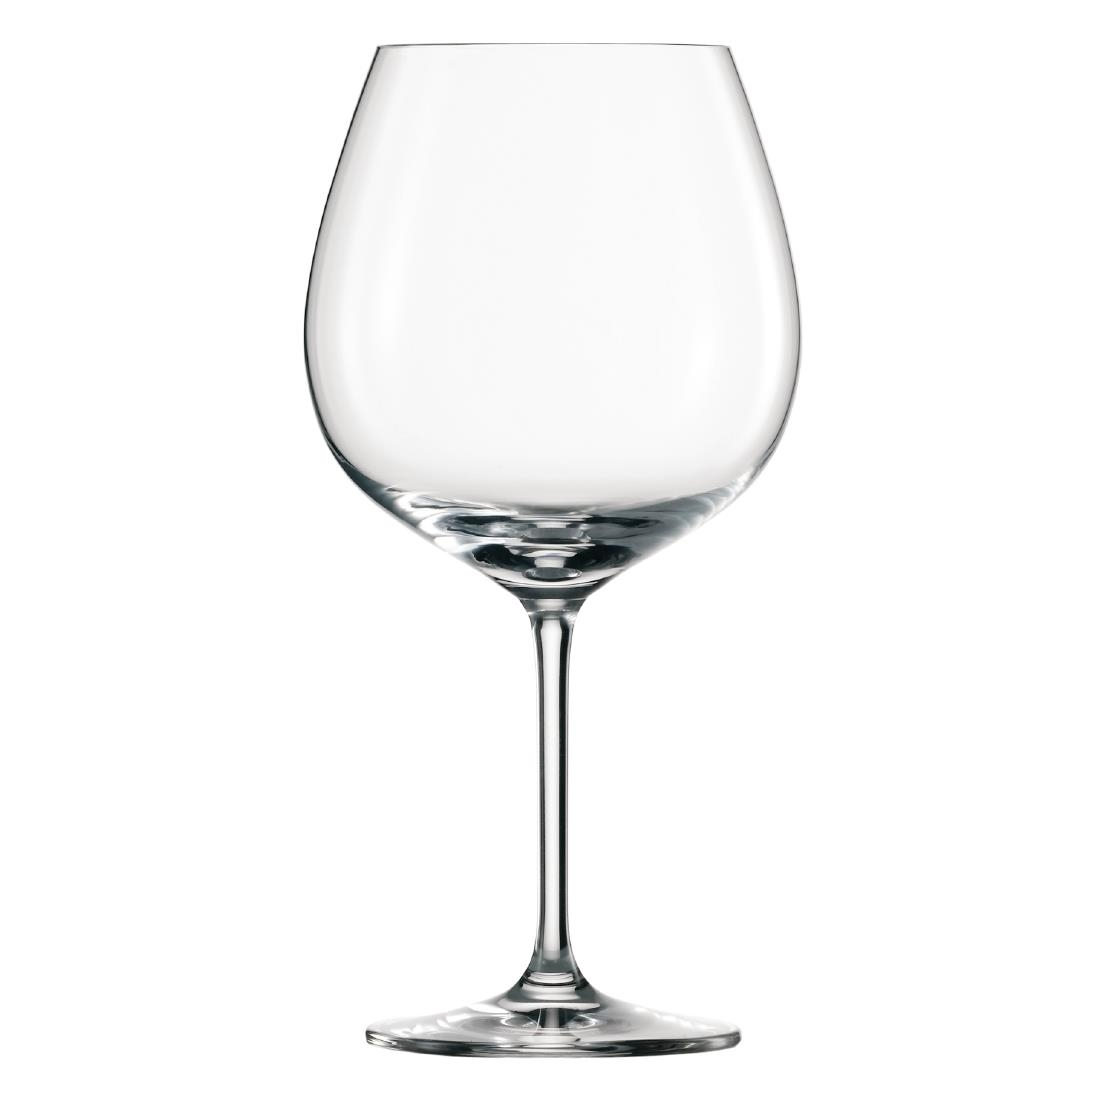 Schott Zwiesel Ivento Large Burgundy Glass 783ml (Pack of 6) Pack of 6 Image